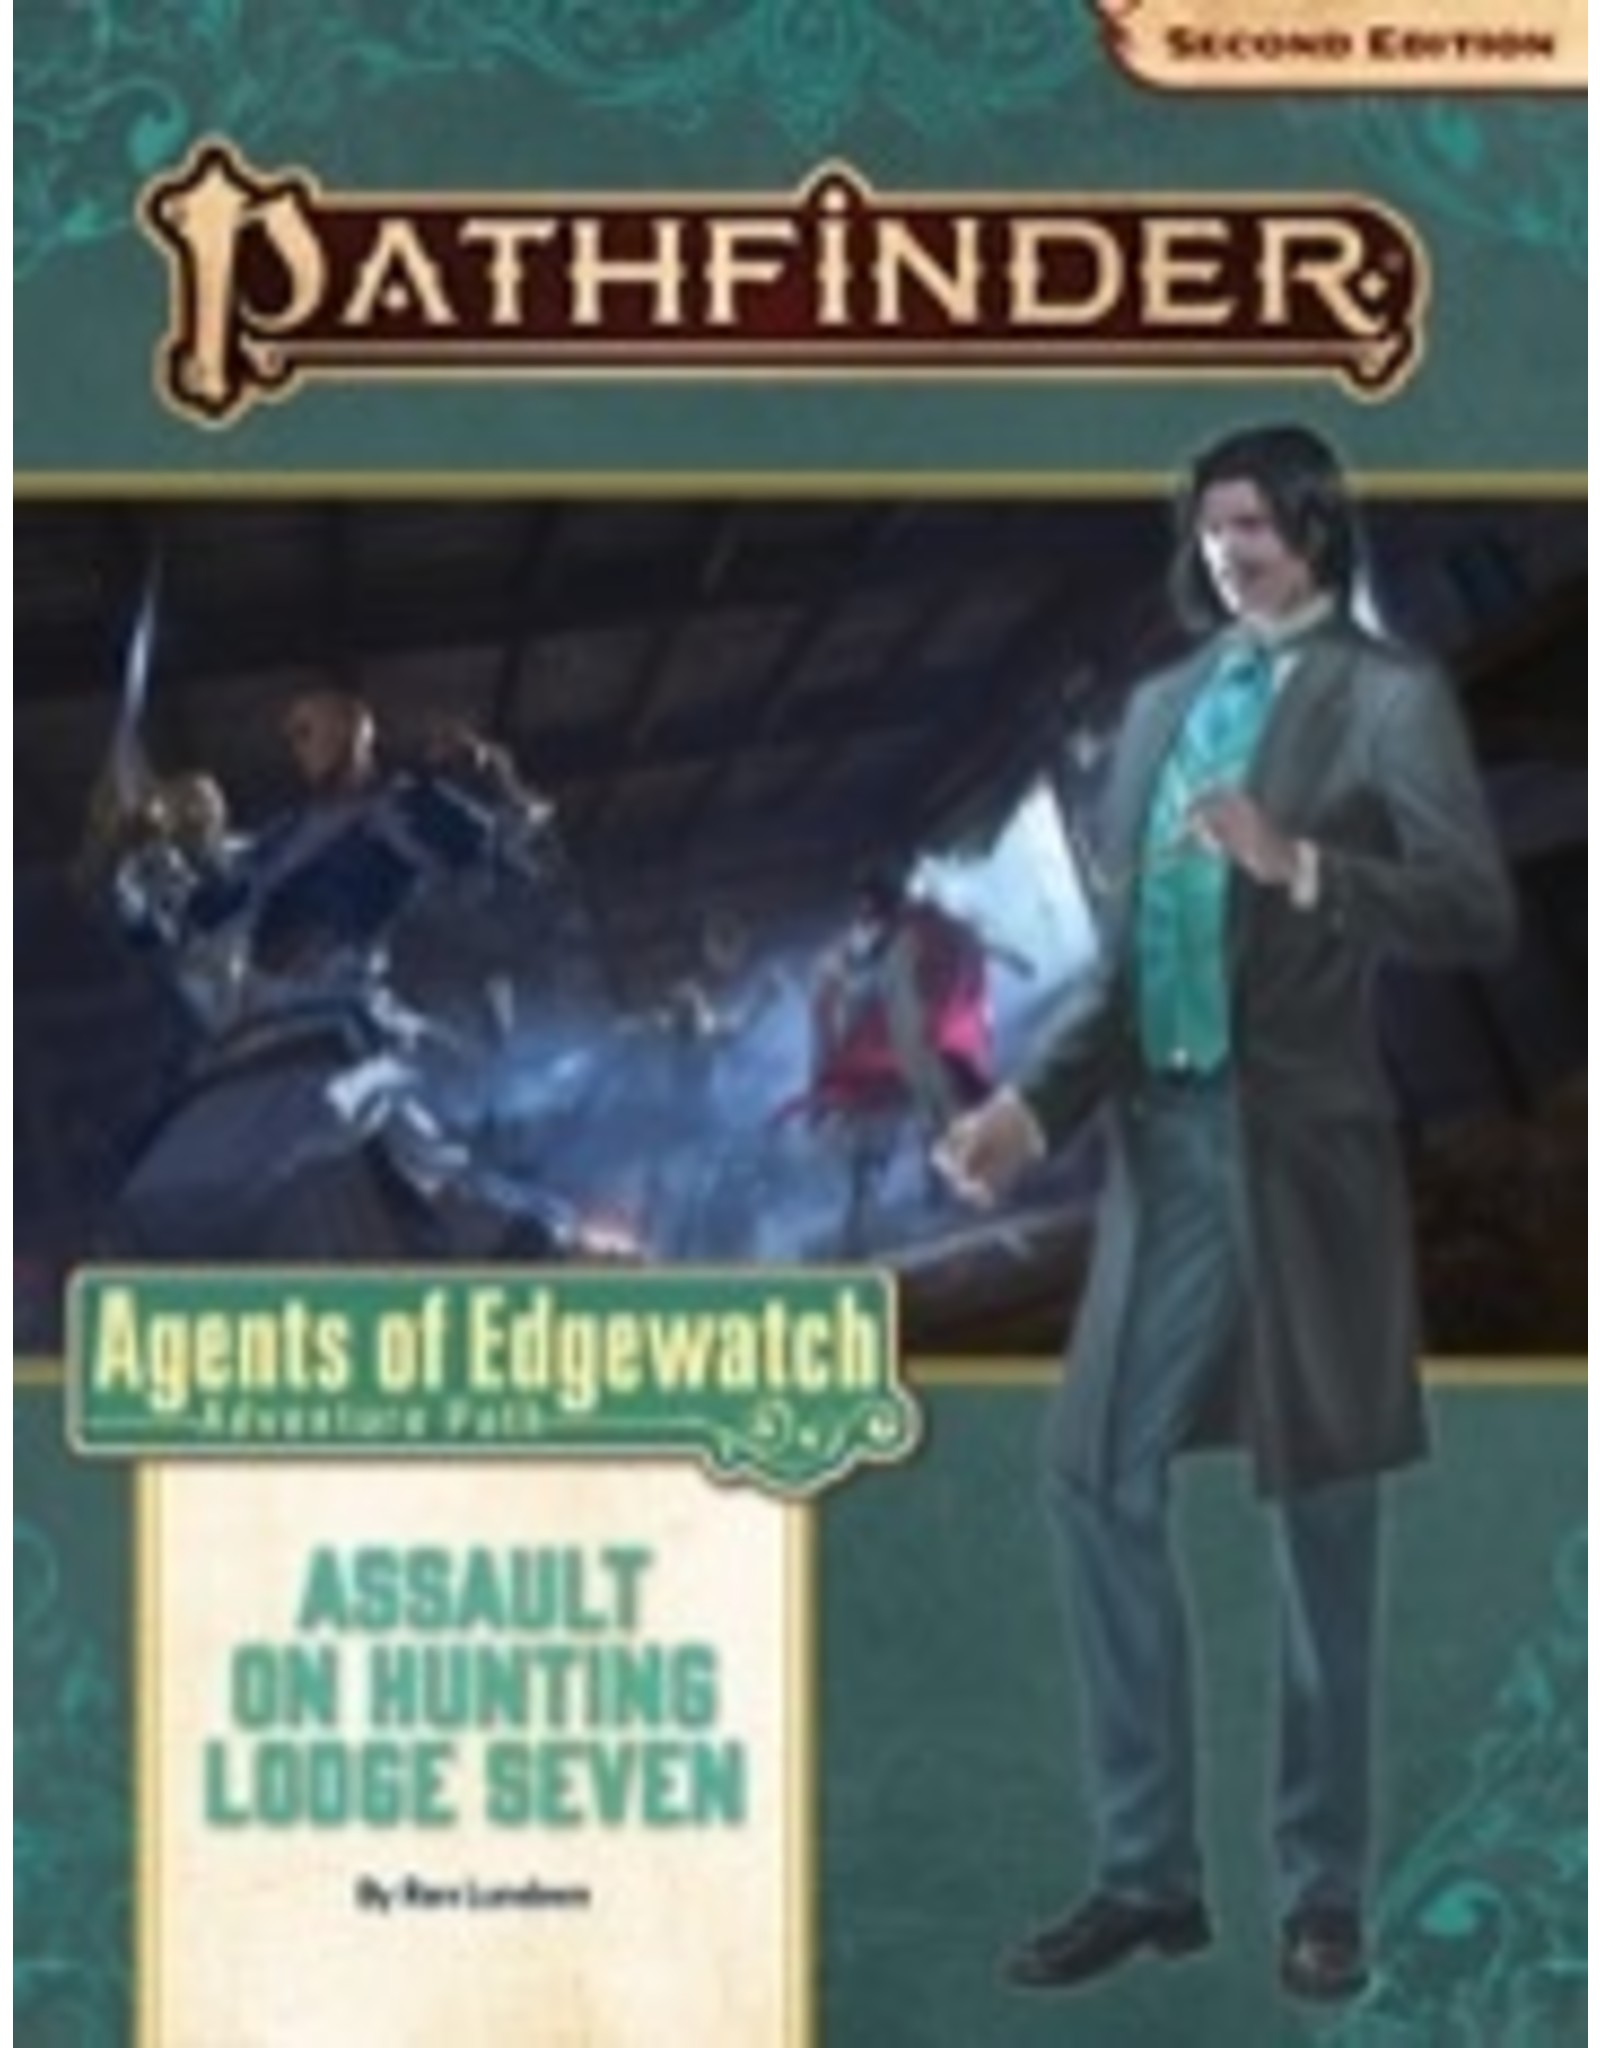 Paizo Pathfinder 2E: Agents of Edgewatch - Assault Lodge 7 (part 4)